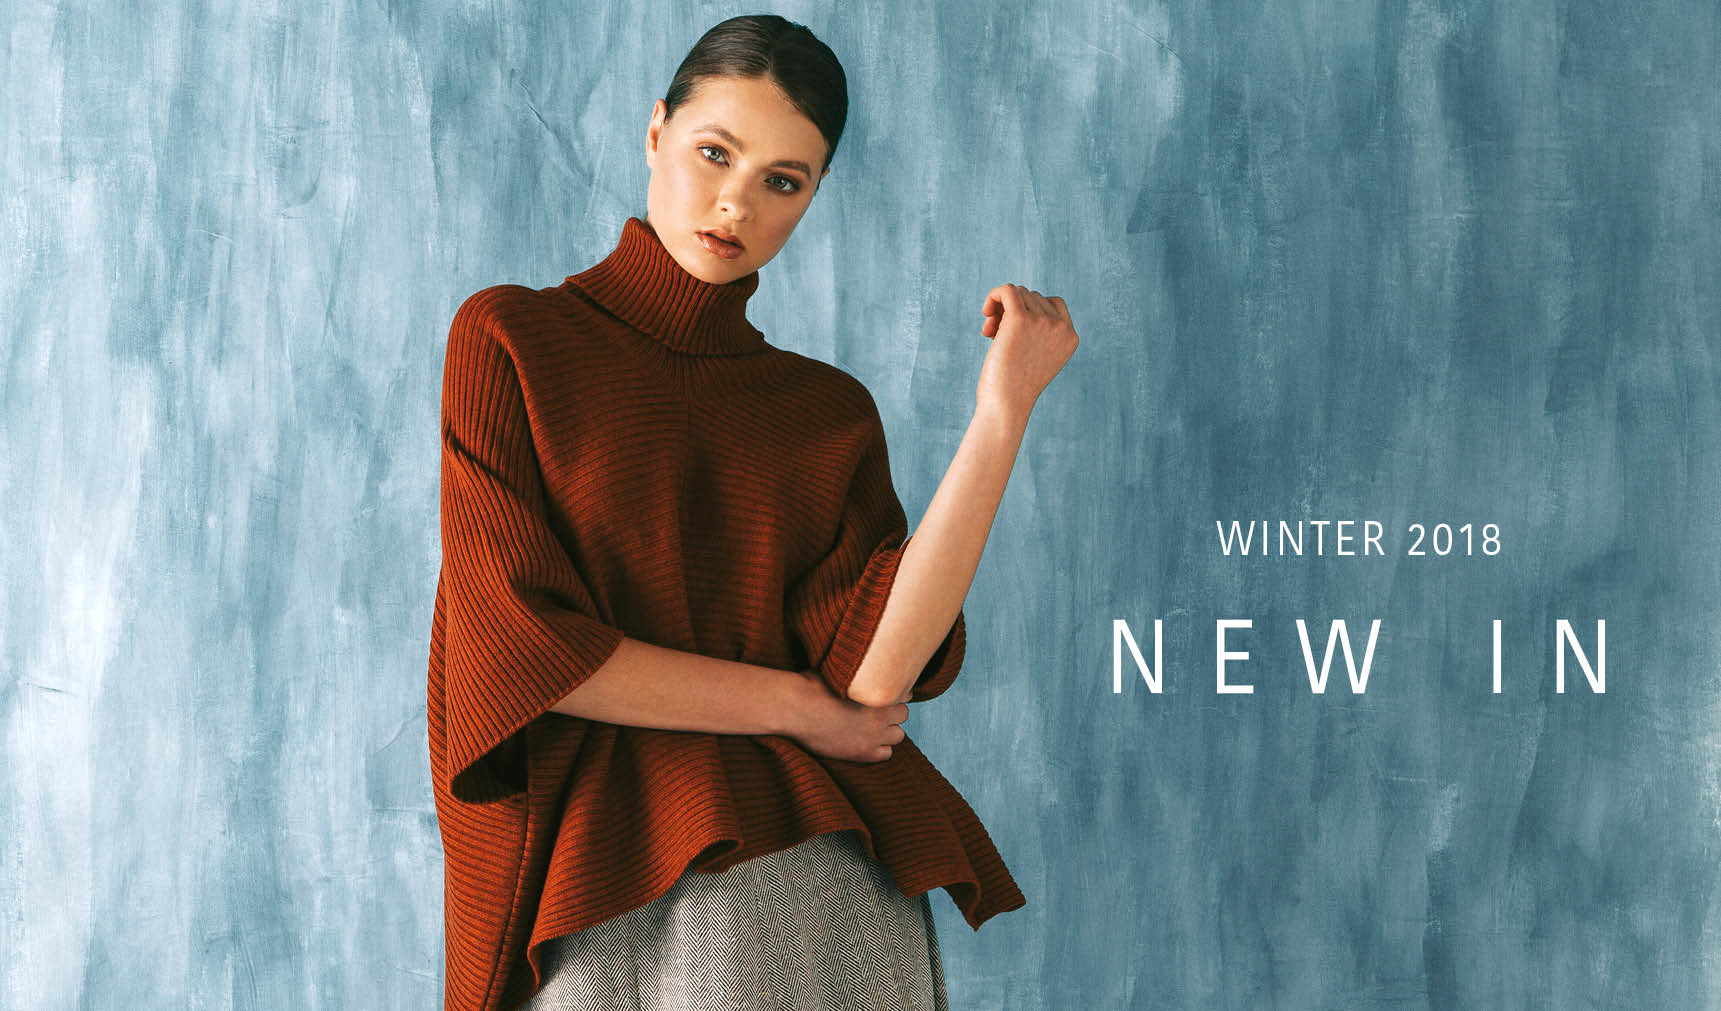 new in - winter clothing